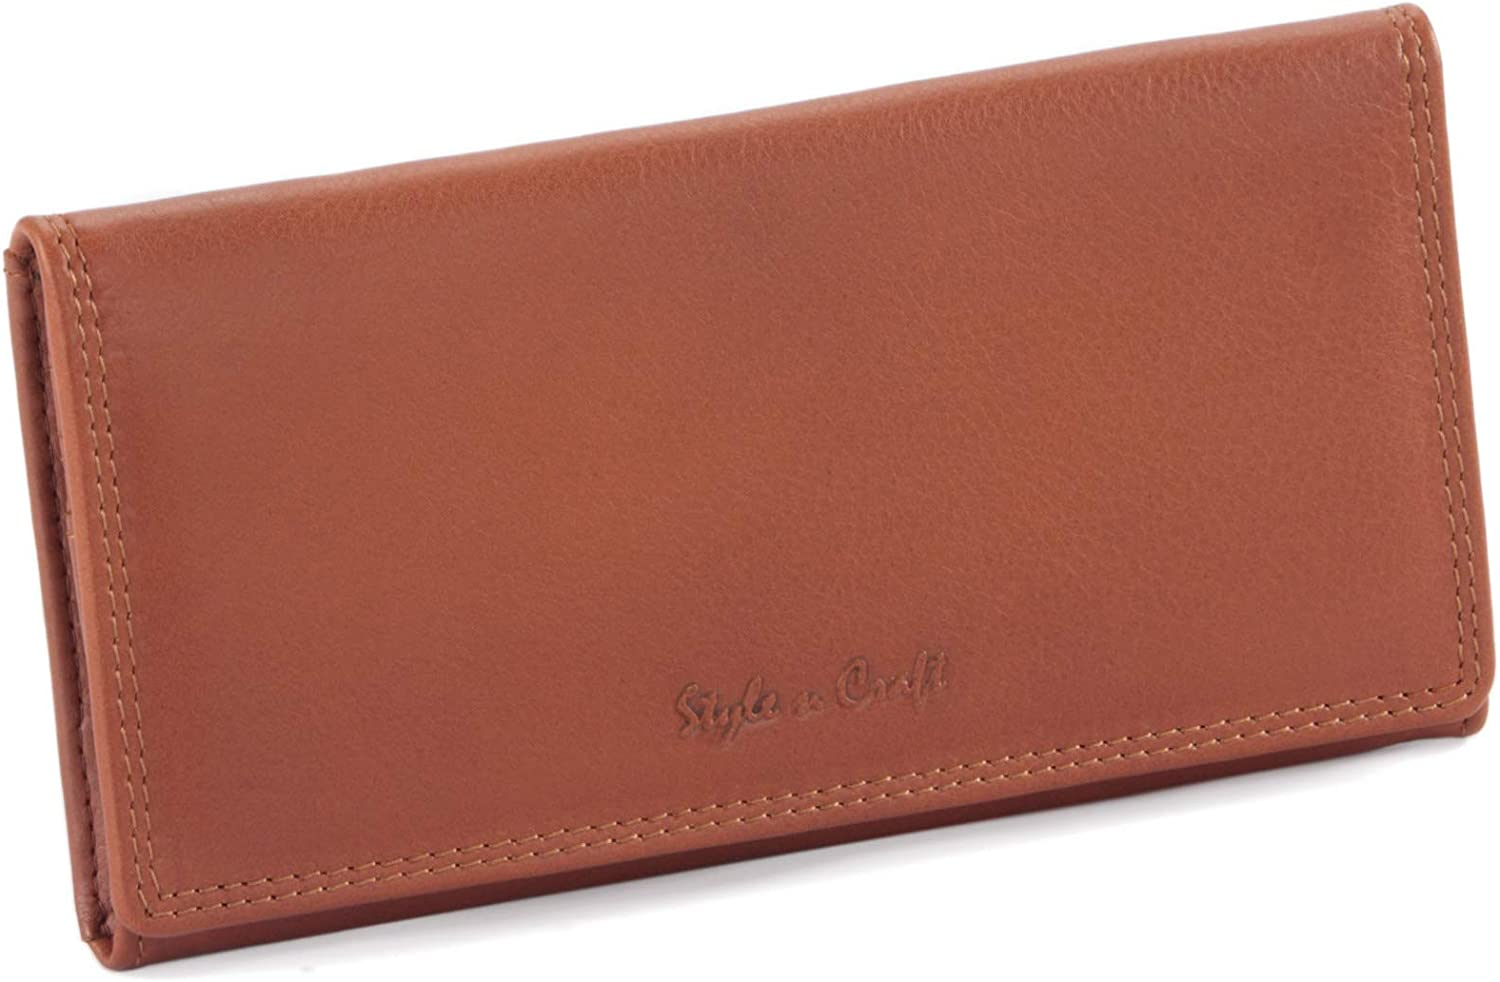 Style N Craft OFFicial Sales for sale 300965-CG Ladies Leather - Cog Clutch Wallet Long